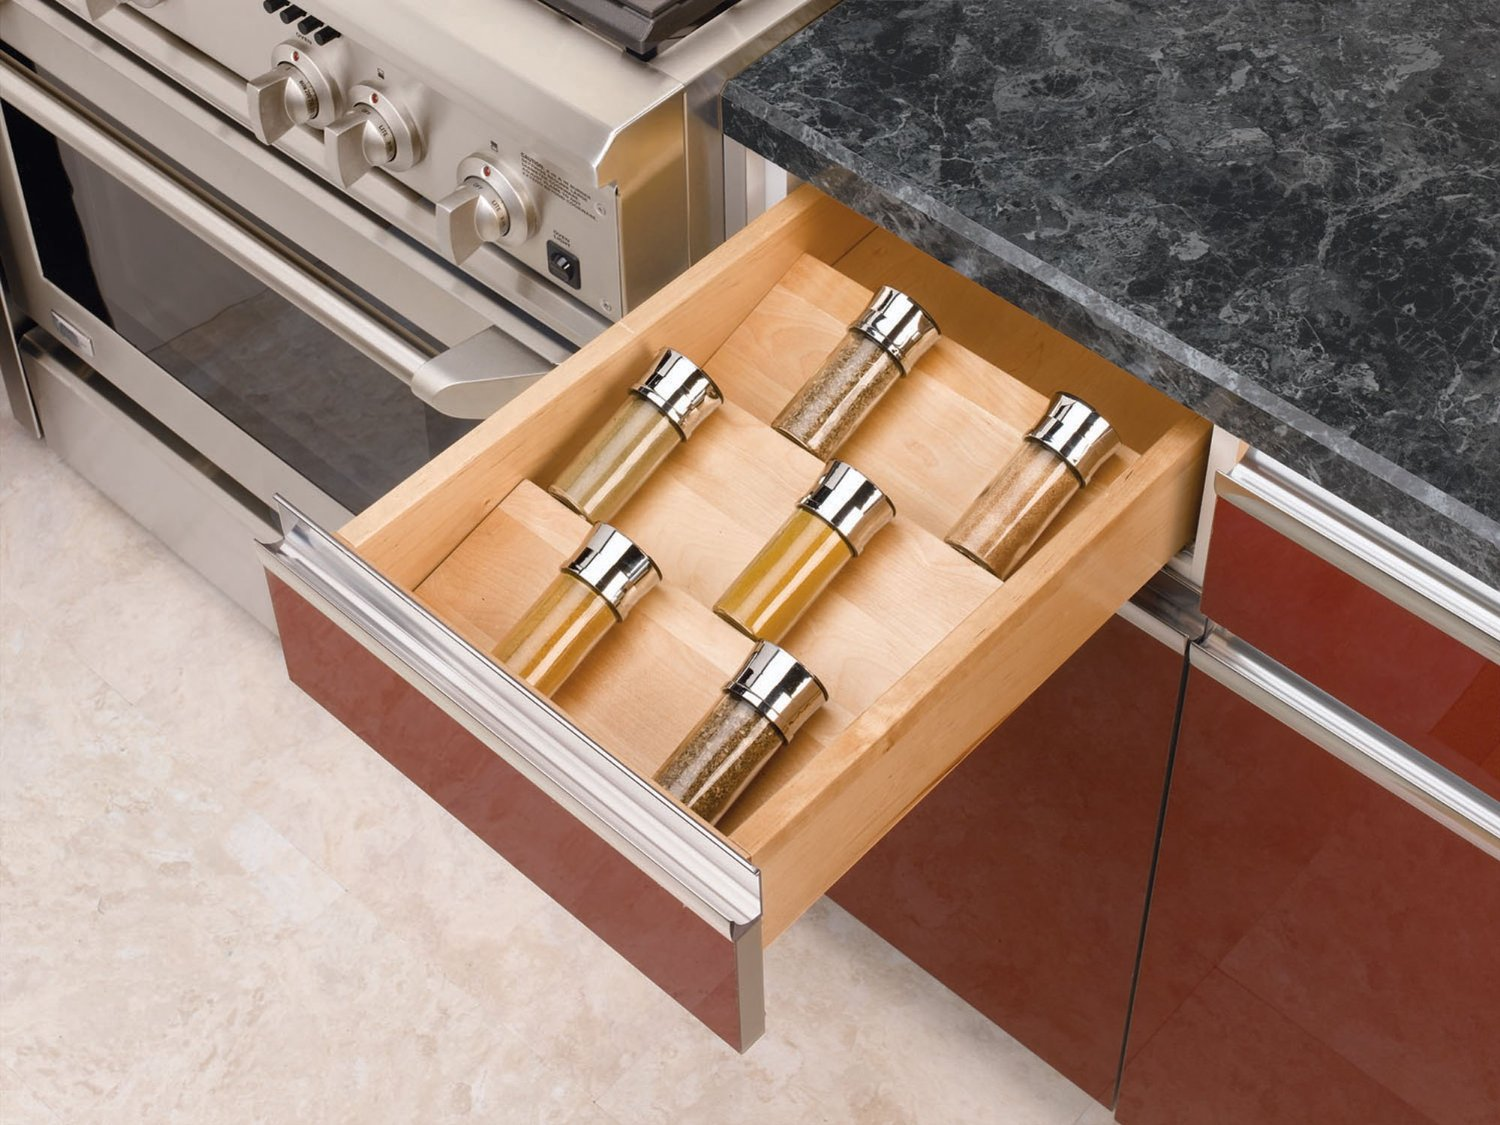 In Drawer Spice Racks Ideas for High Comfortable Cooking ...